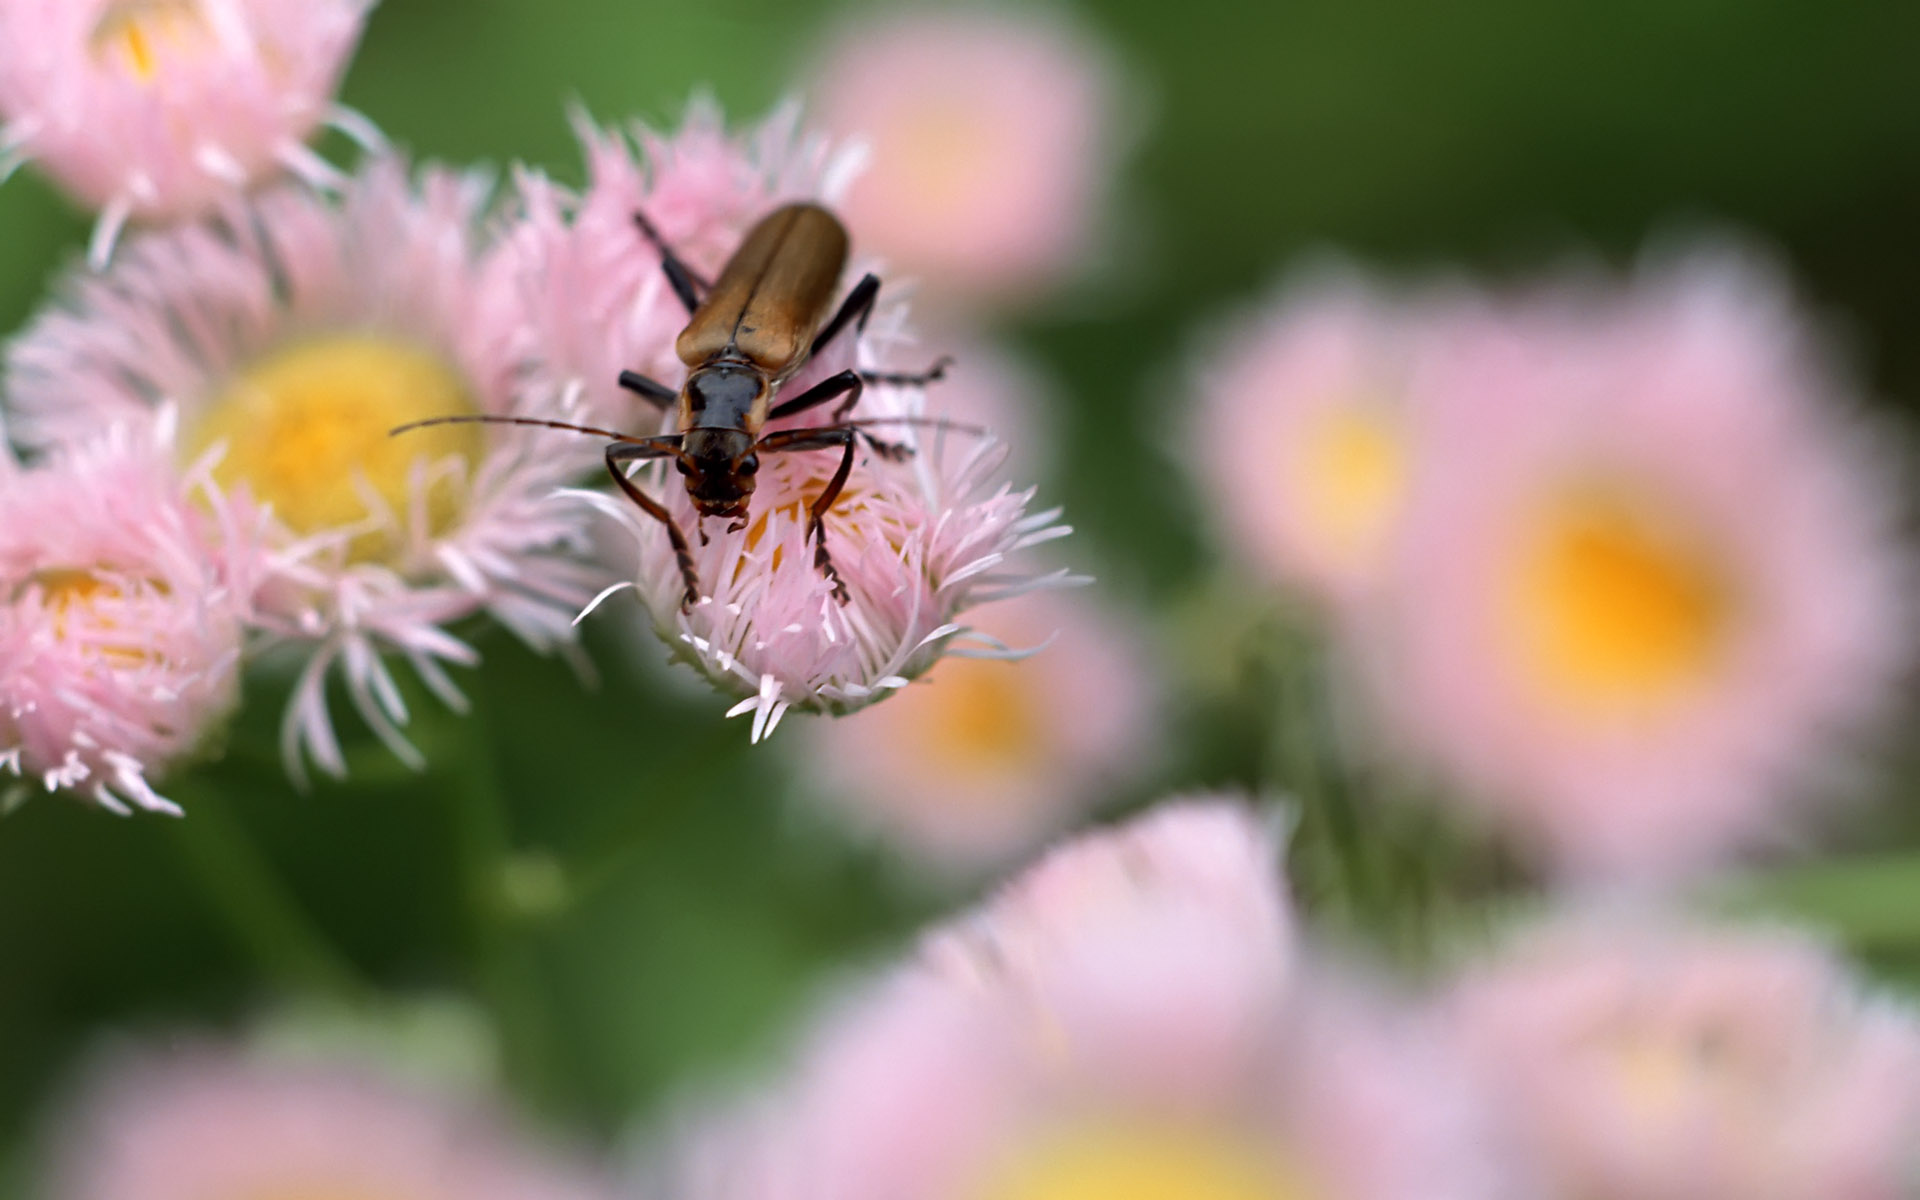 Widescreen insect photo material 2065